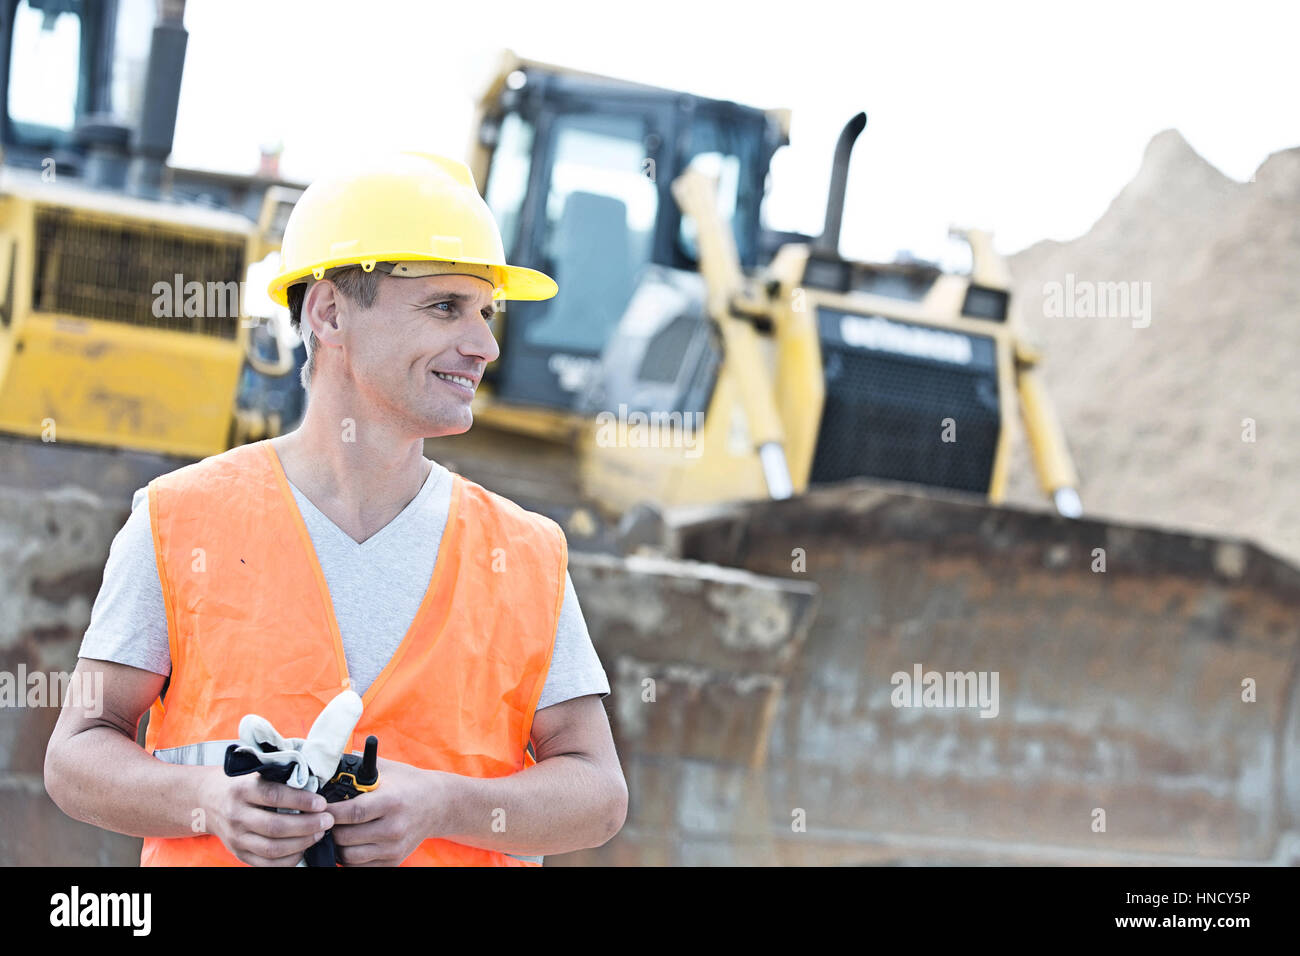 Smiling supervisor looking away at construction site - Stock Image